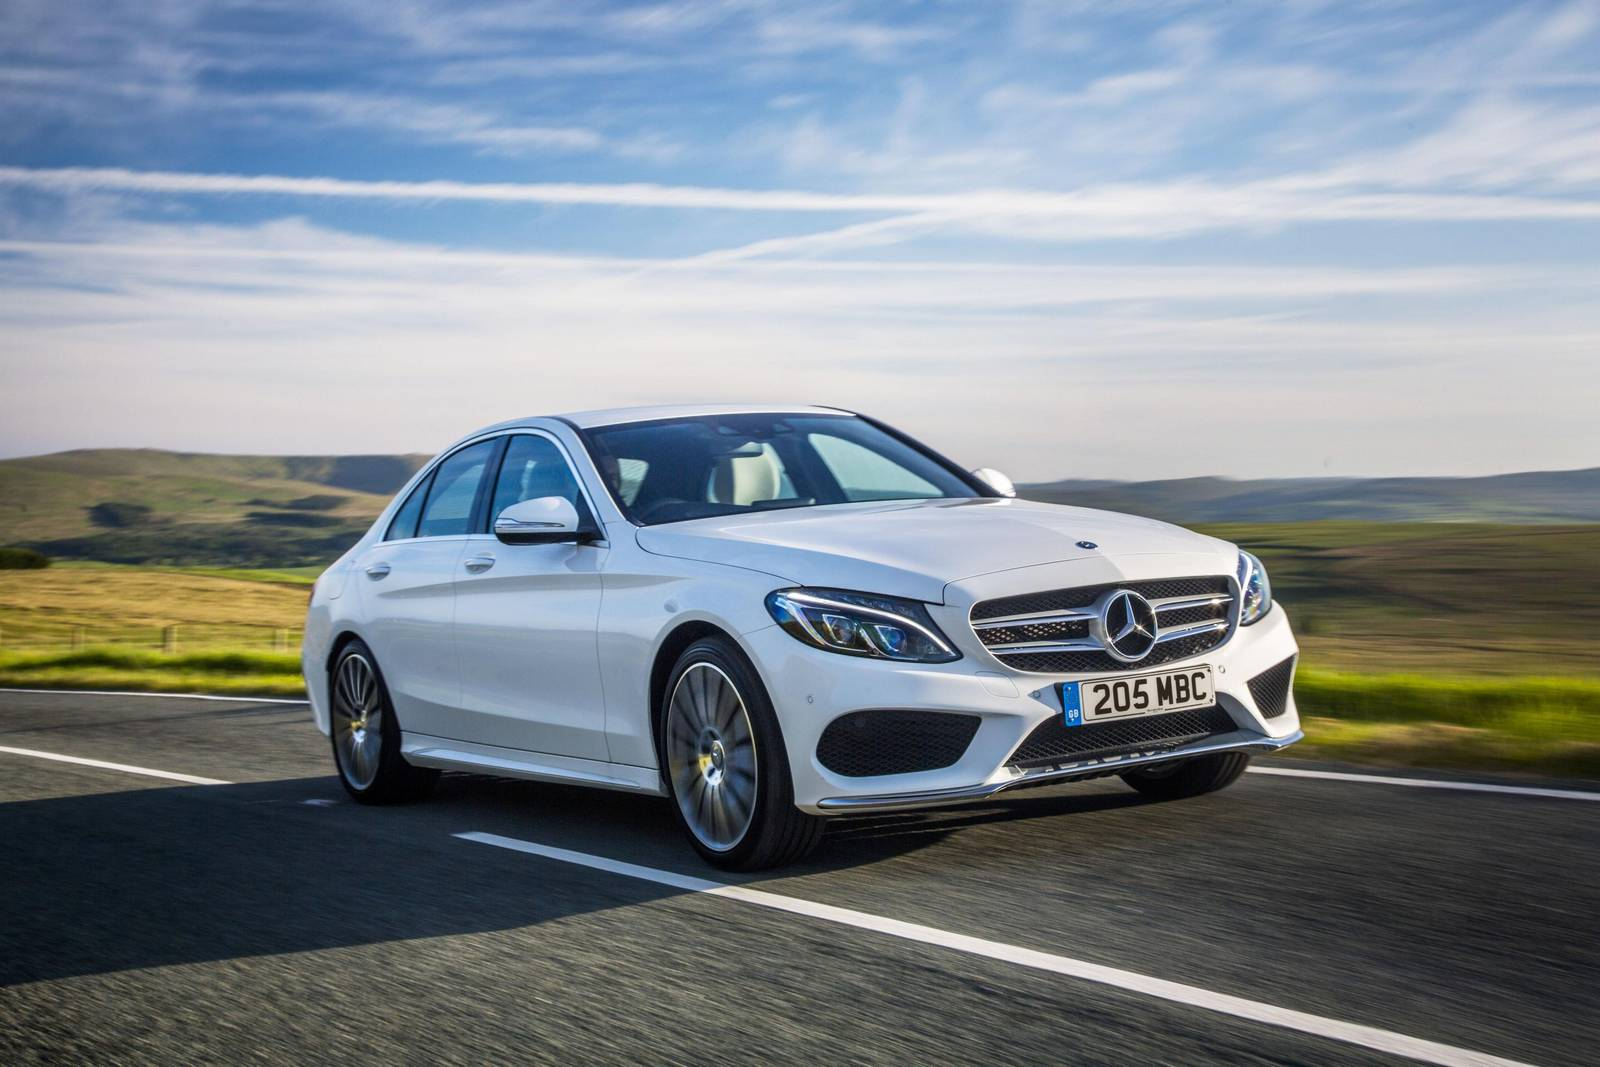 39 000 mercedes c class cars recalled due to steering for Mercedes benz c300 recalls